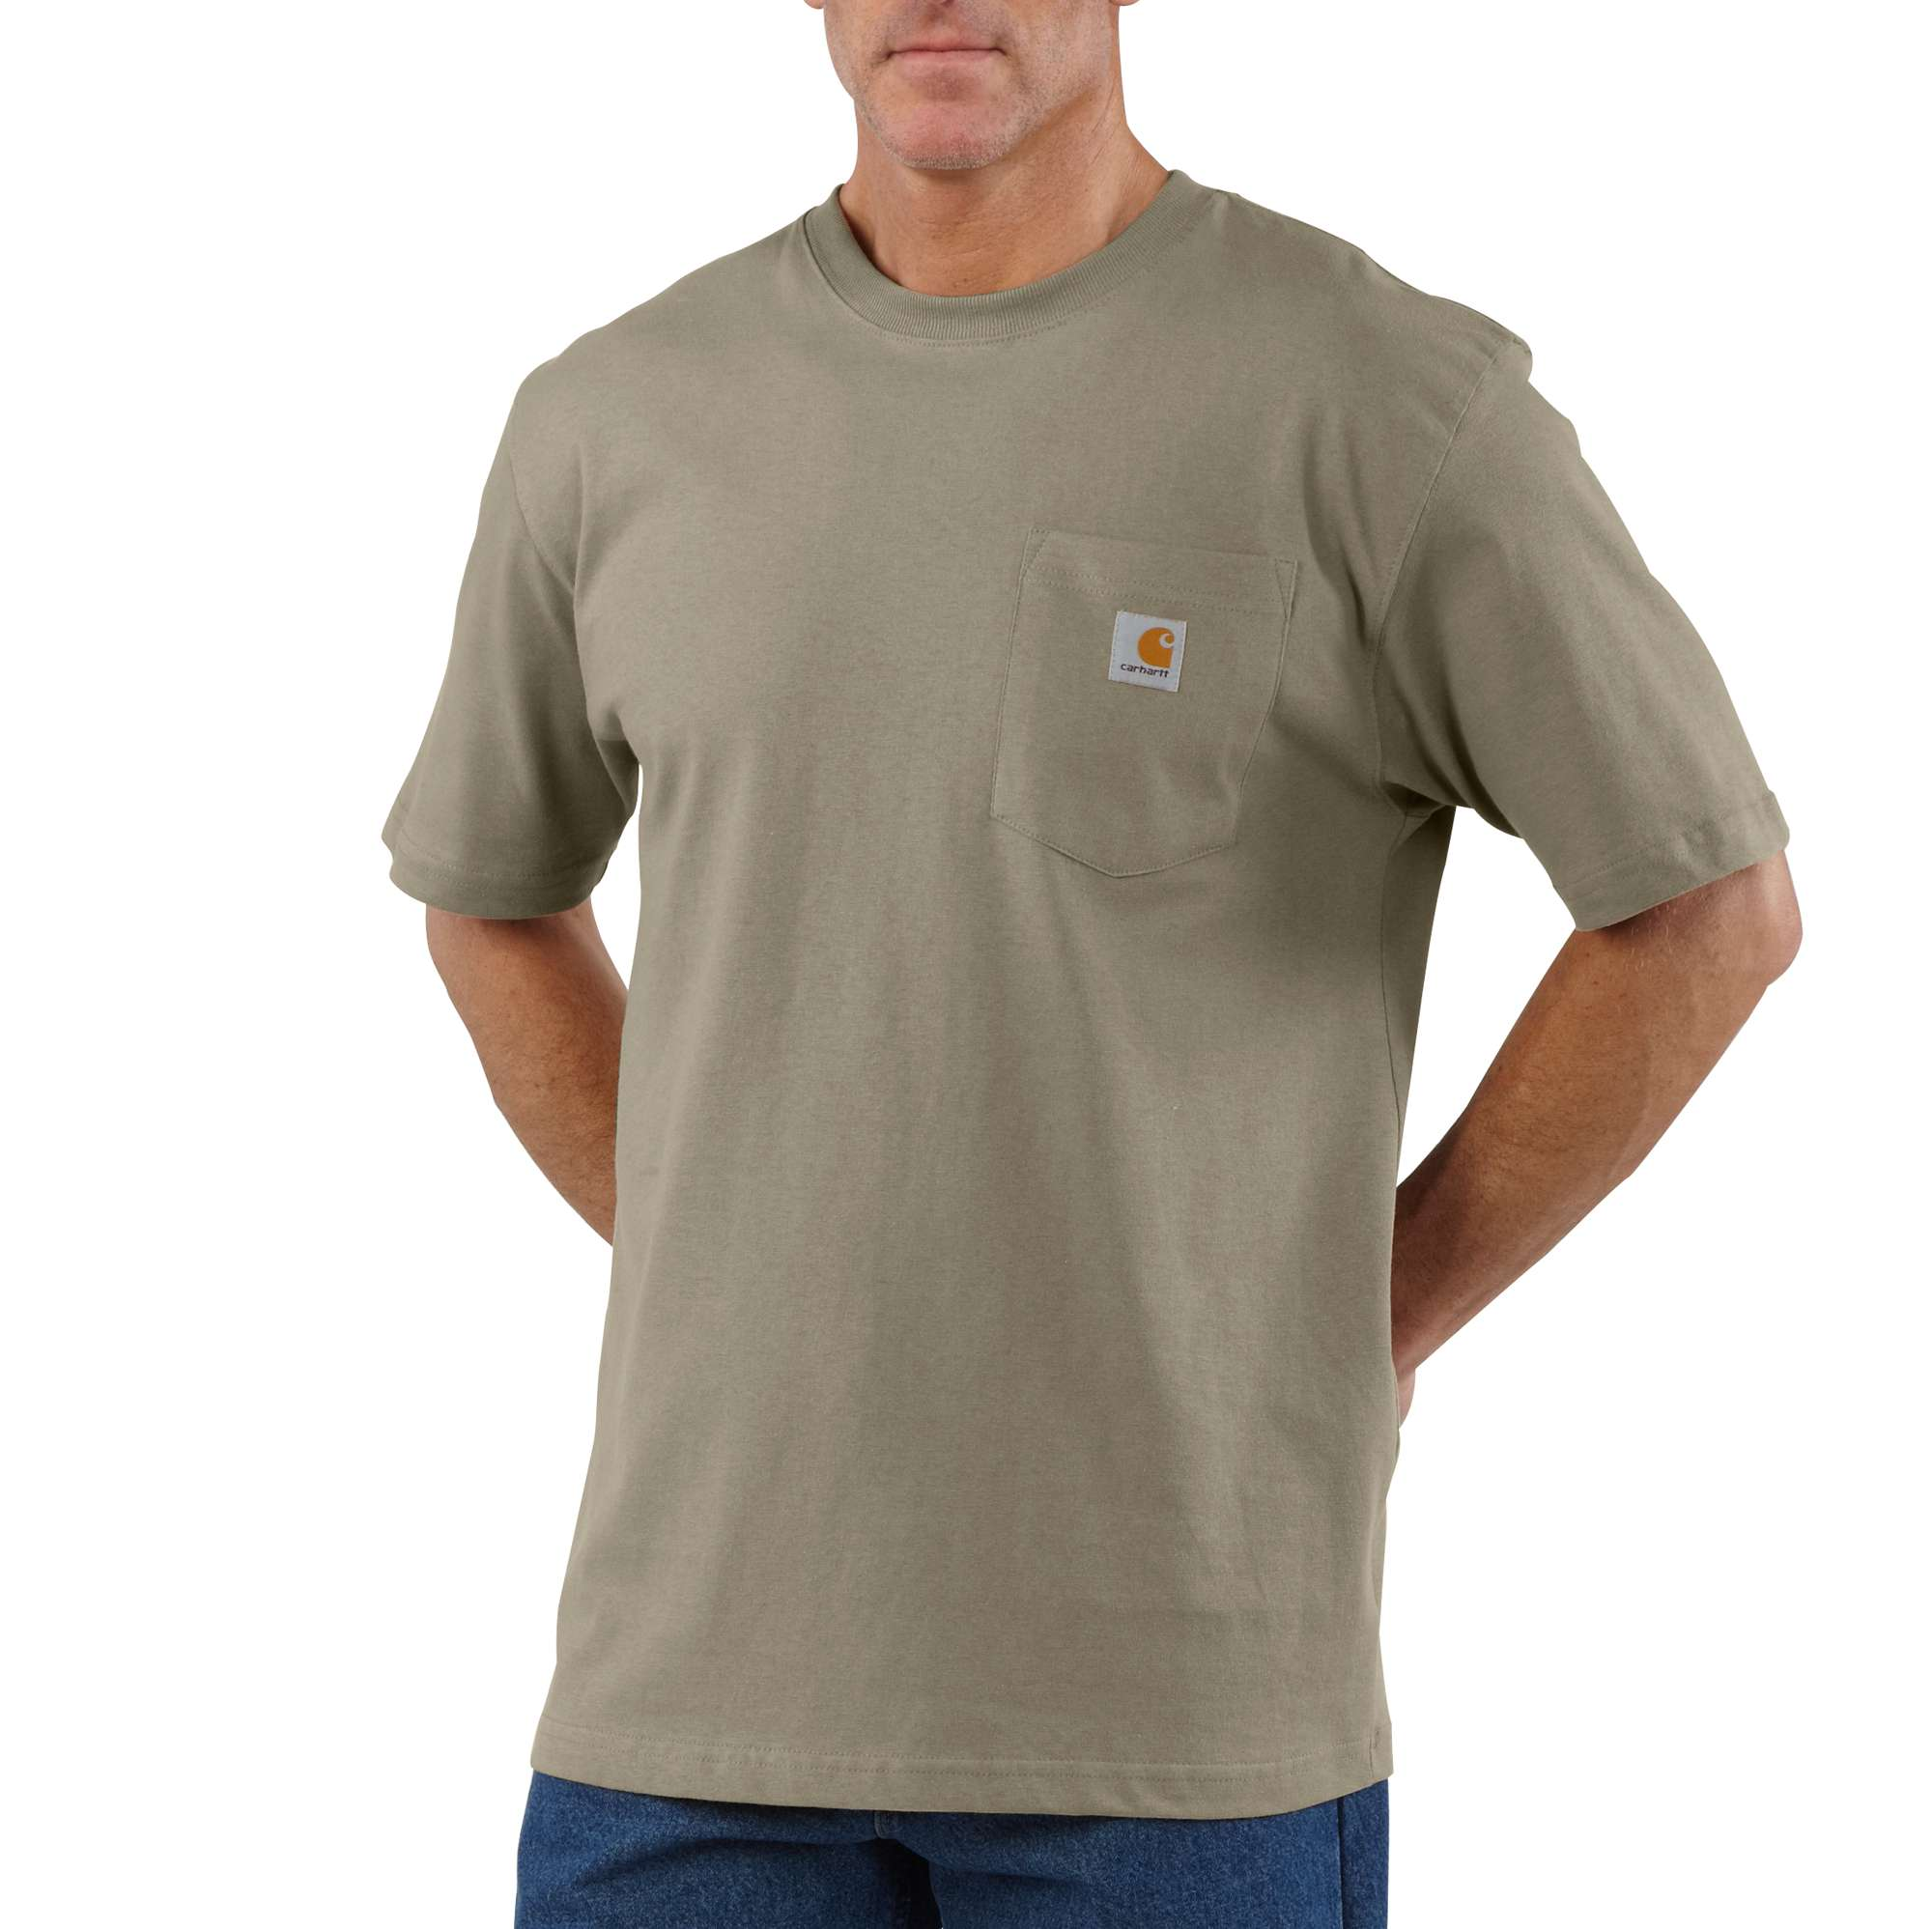 Men's Workwear Pocket Tee, Lt Brown,Taupe, swatch